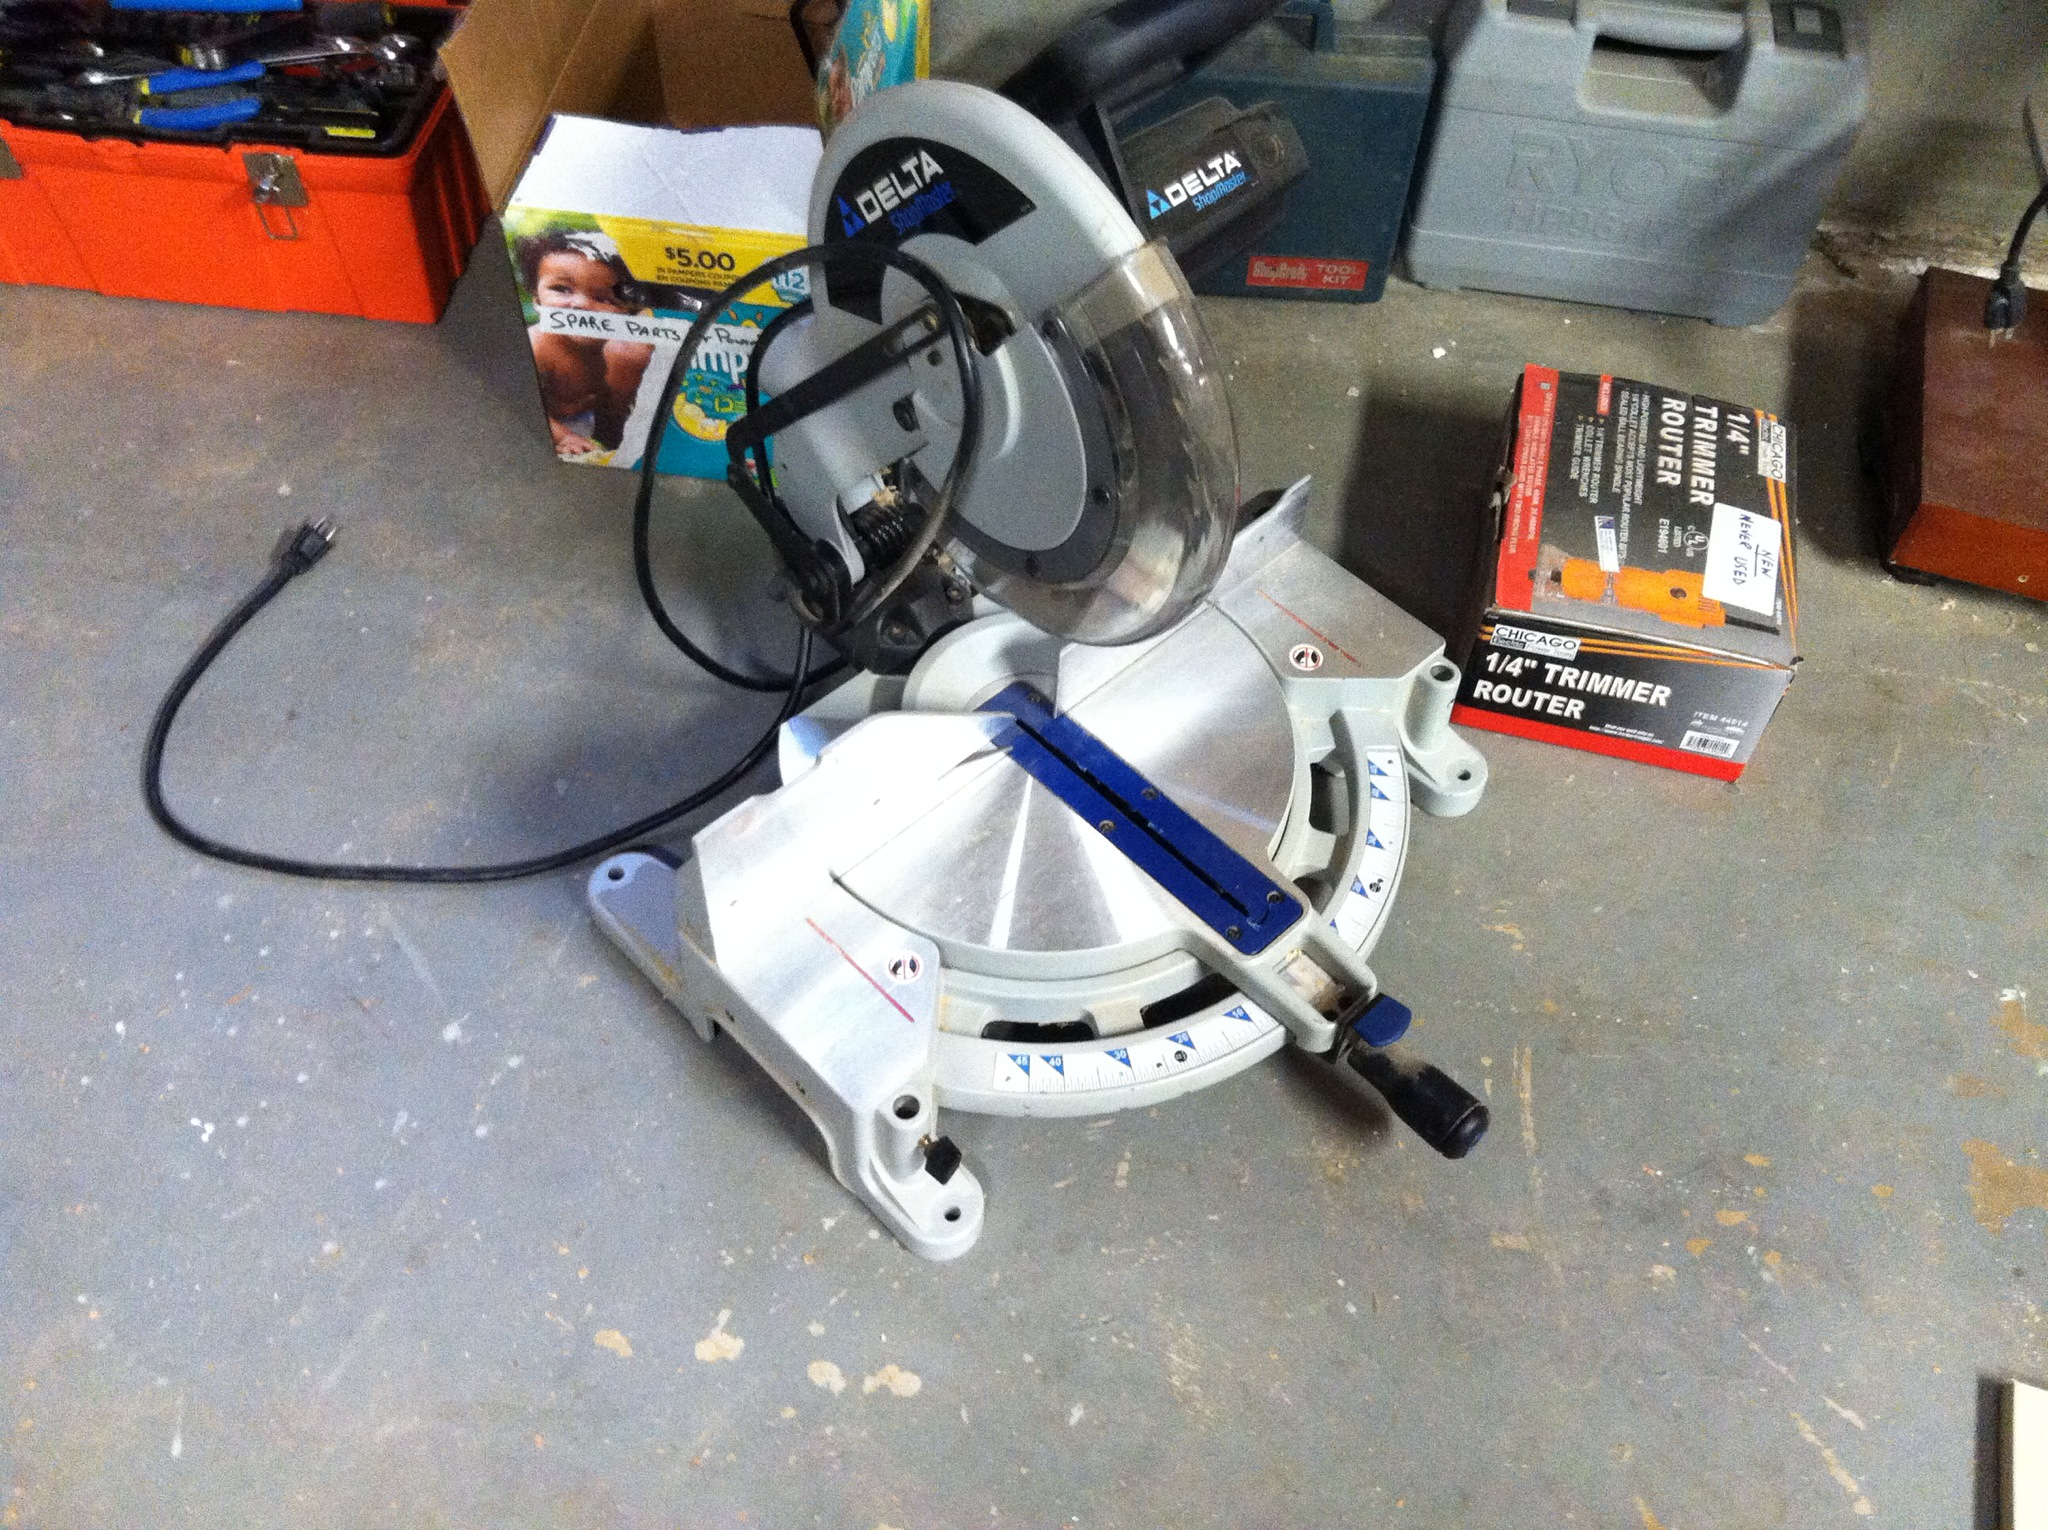 The Delta 10 inch miter saw that needs a home